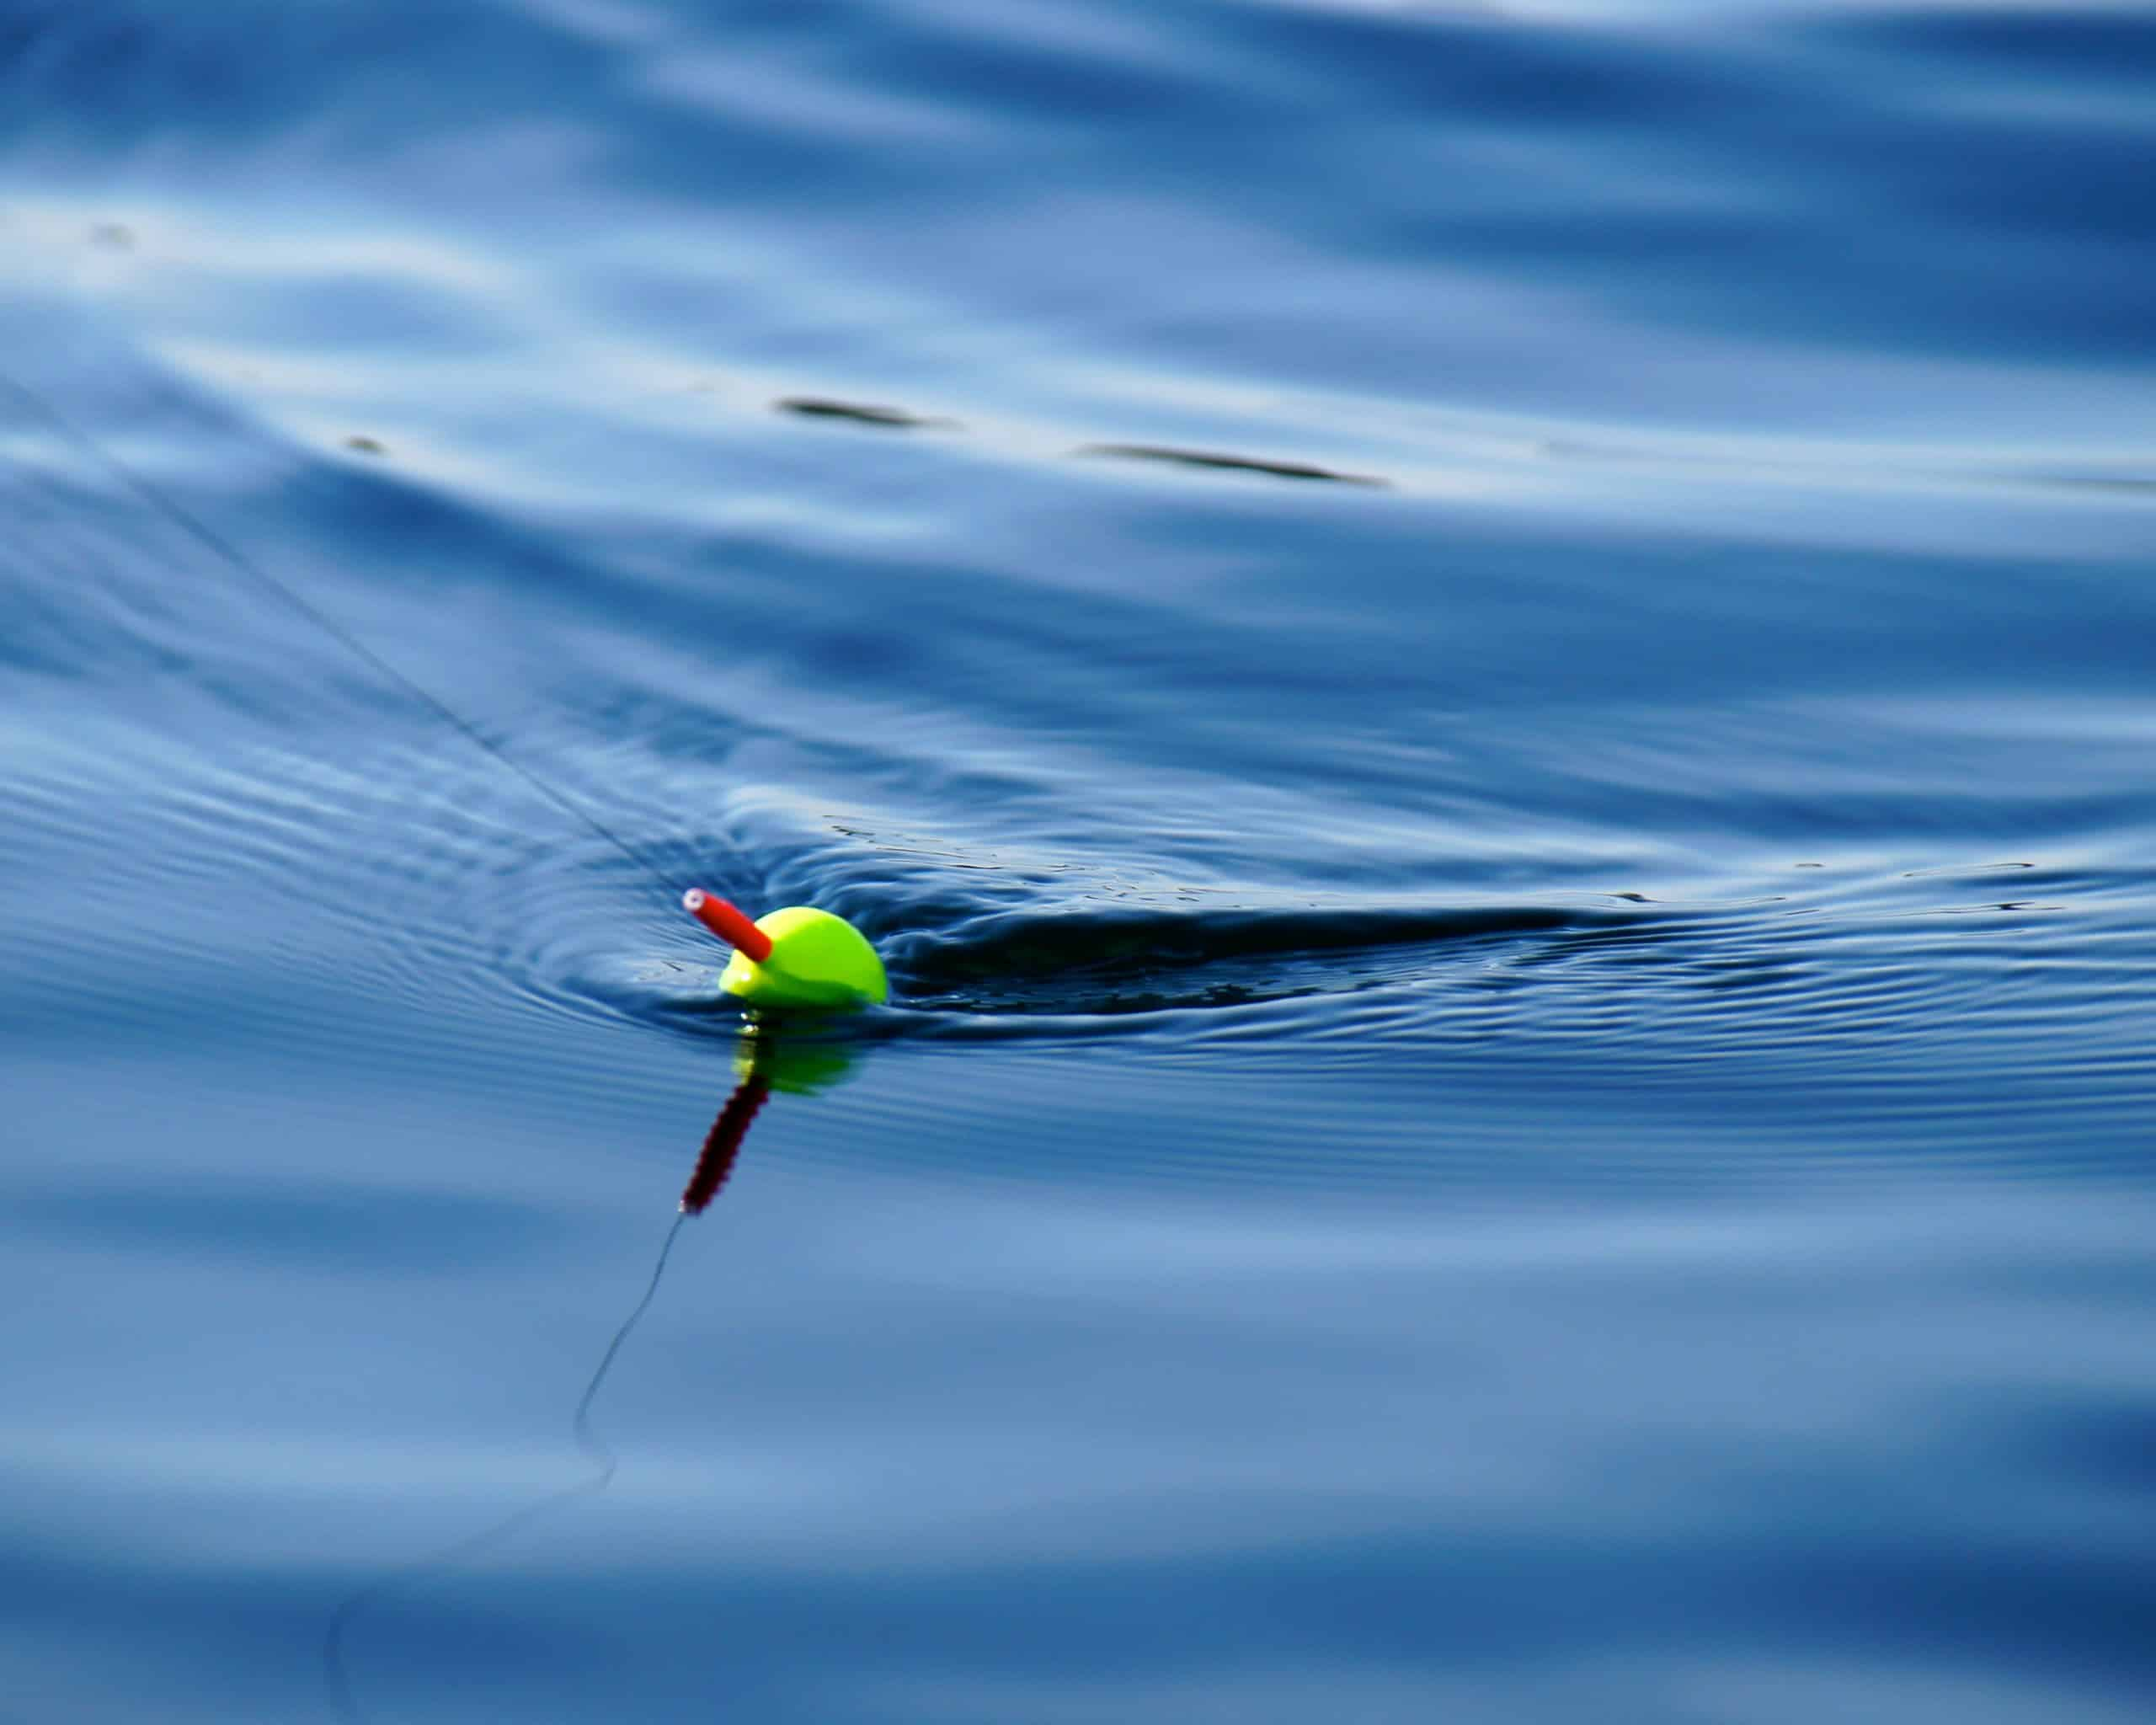 Tips To Catch More Fish - Catch More Fish With These Tricks